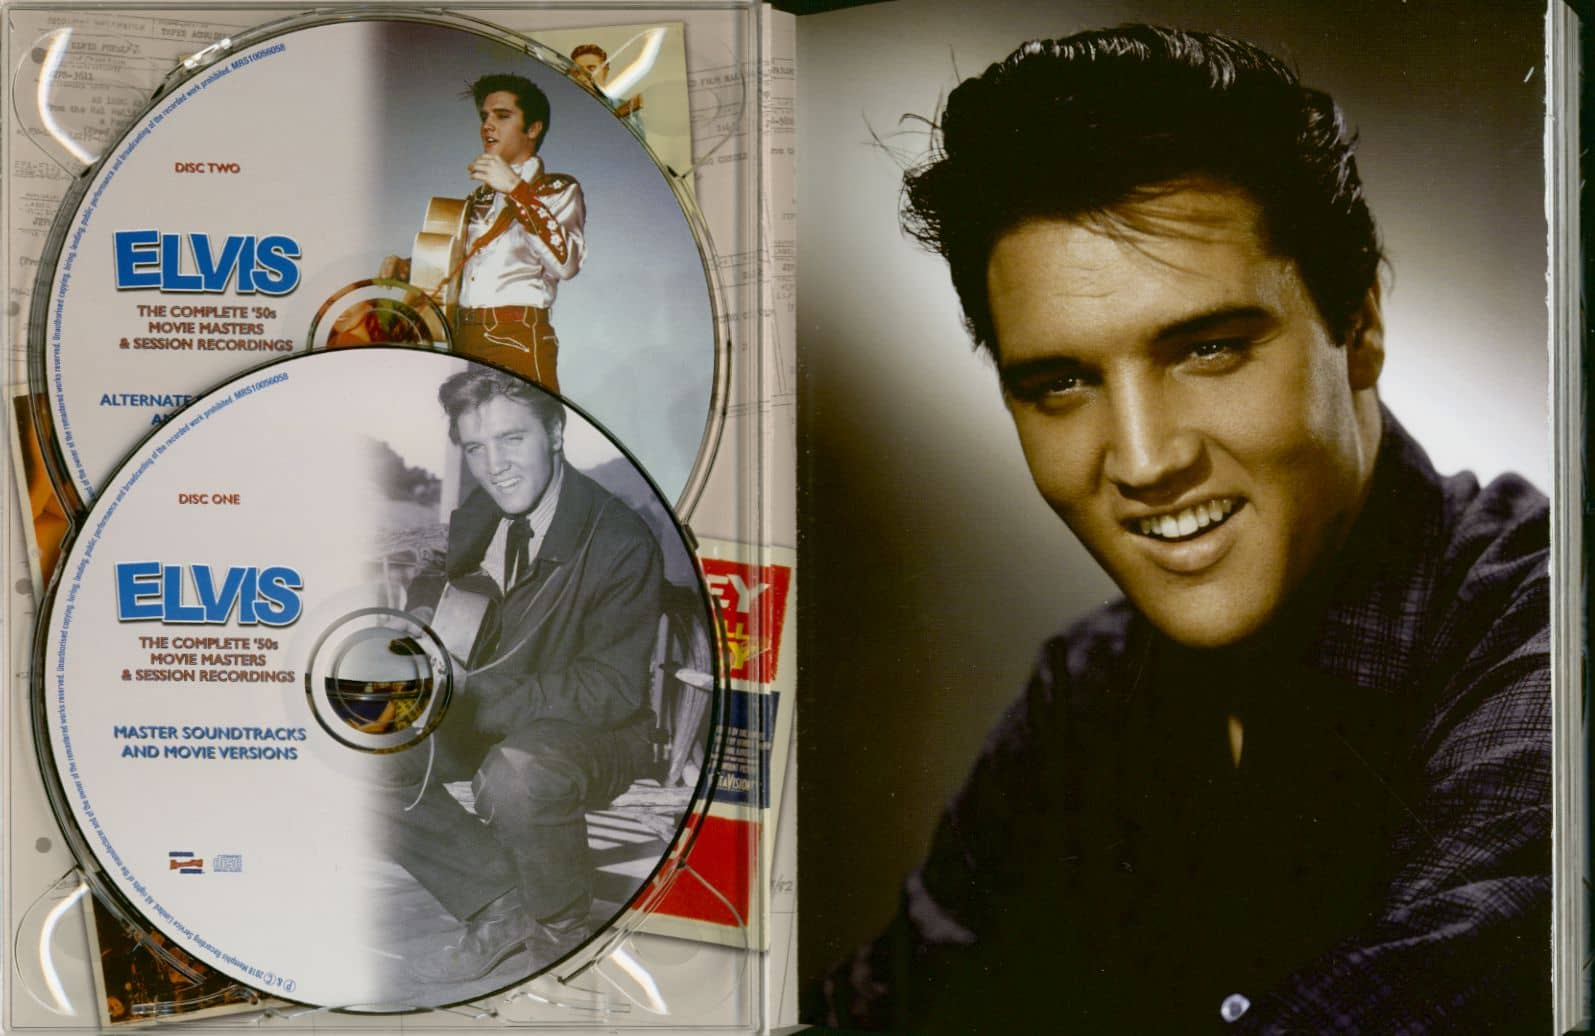 Elvis Presley Cd The Complete 50s Movie Masters